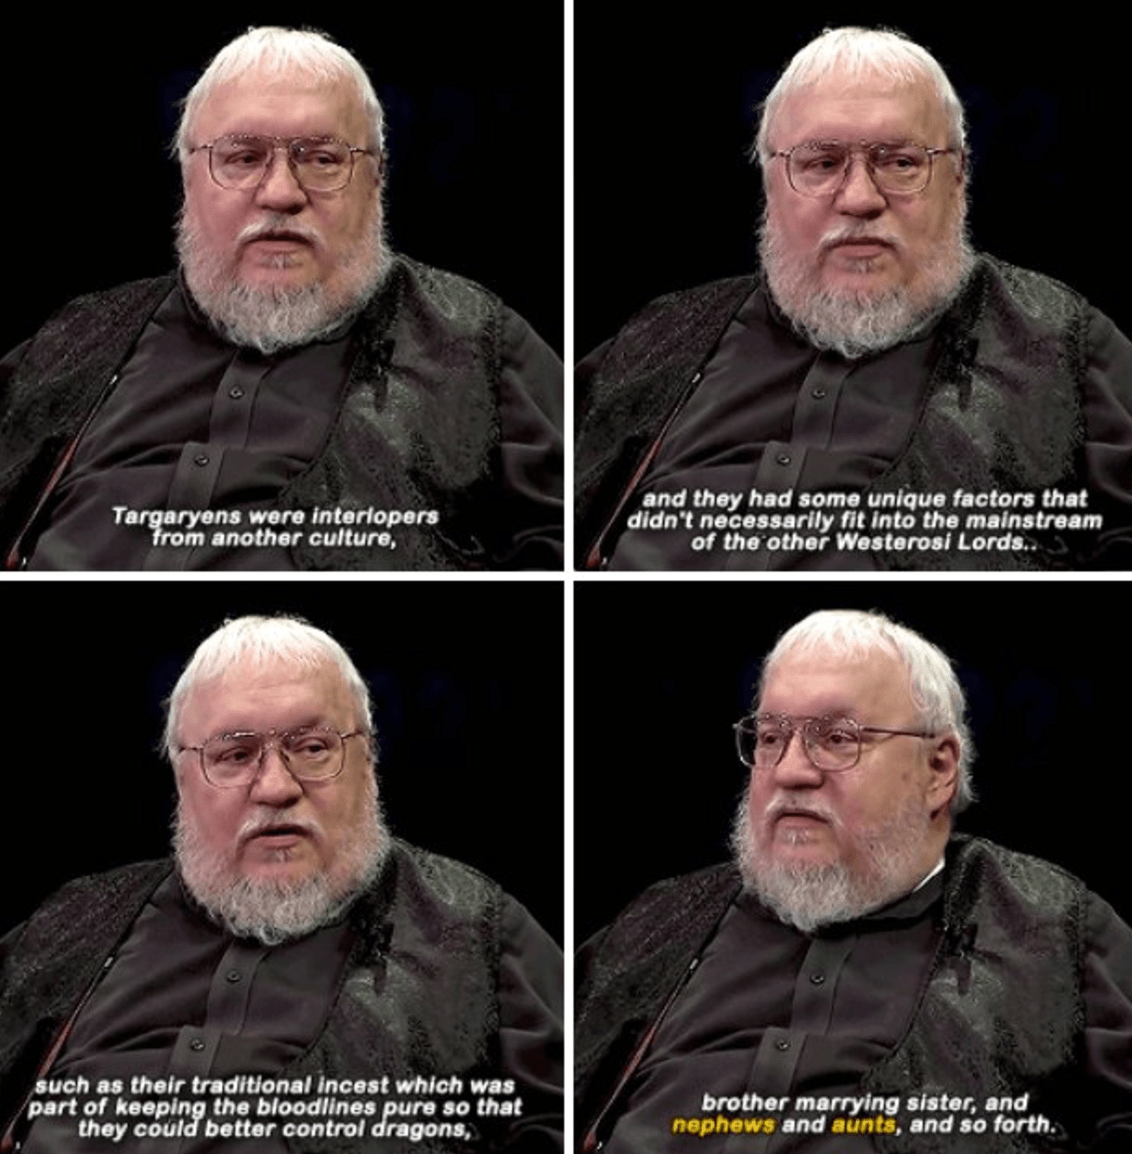 """I remember when I was doing Season 1 and we were on location in Malta, and George R. R. Martin came to visit. He was sitting in a chair, and he was being really quite open about things that were to come,"" Taylor told Deadline. ""... he alluded to the fact that Jon and Dany were the point, kind of. That, at the time, there was a huge, vast array of characters, and Jon was a lowly, you know, bastard son. So it wasn't clear to us at the time, but he did sort of say things that made it clear that the meeting and the convergence of Jon and Dany were sort of the point of the series."""